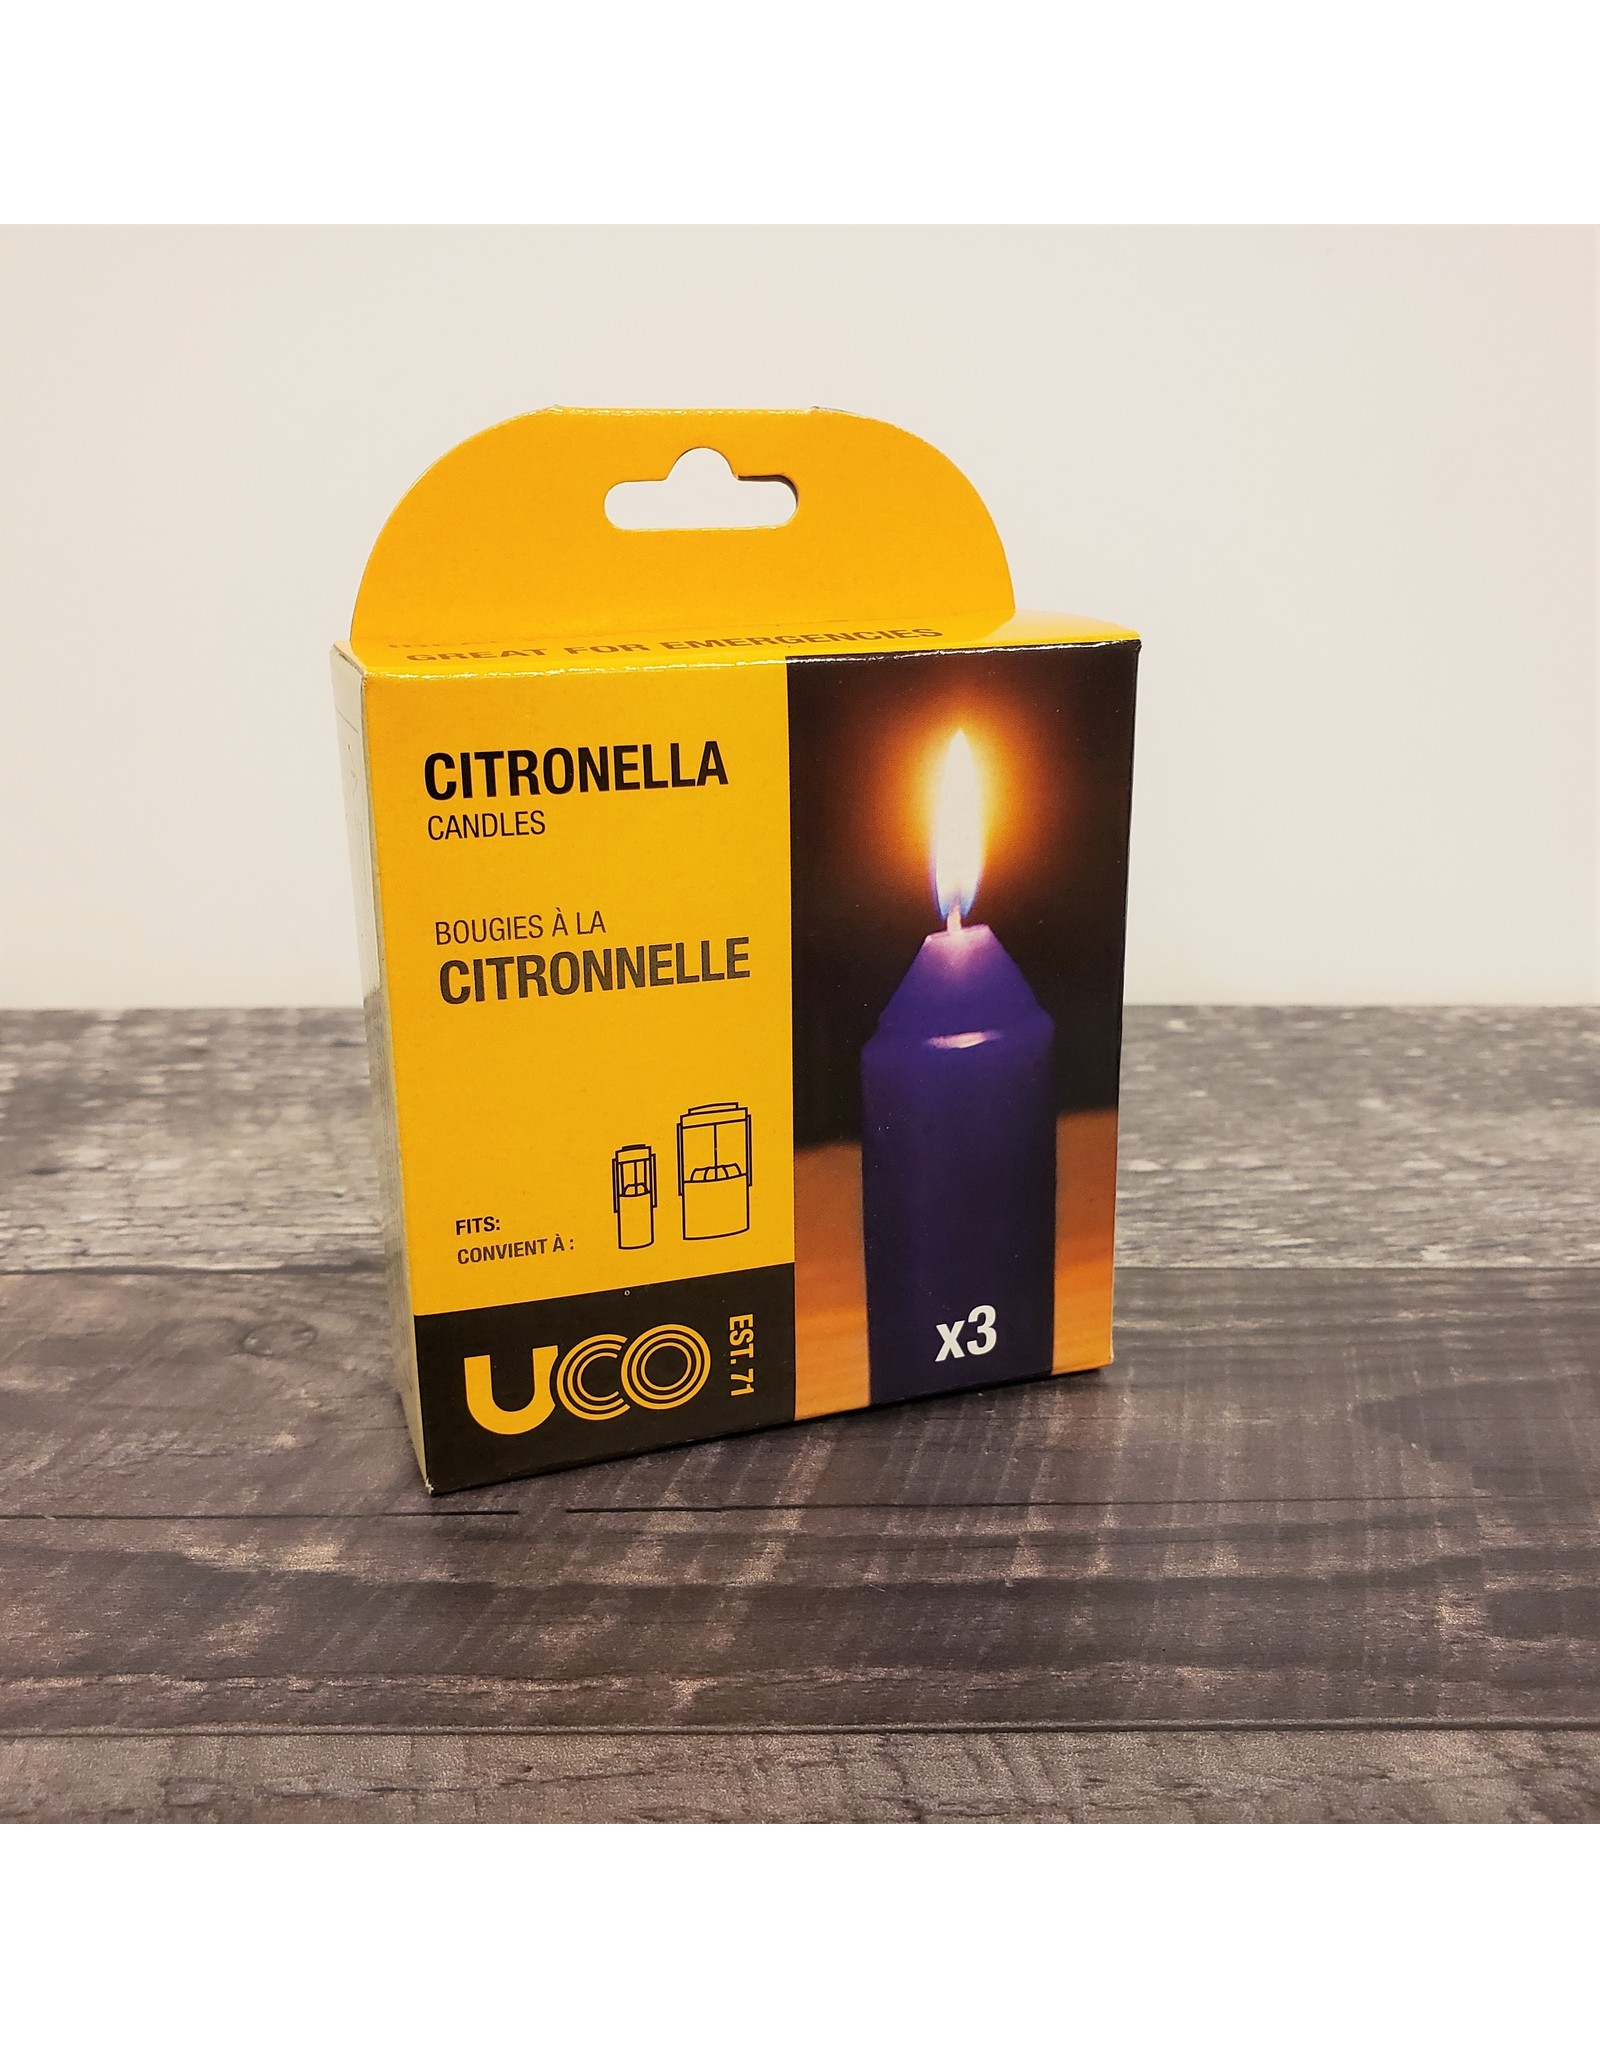 REDPINE OUTDOOR EQUIPMENT CITRONELLA CANDLES UCO (3 PACK)